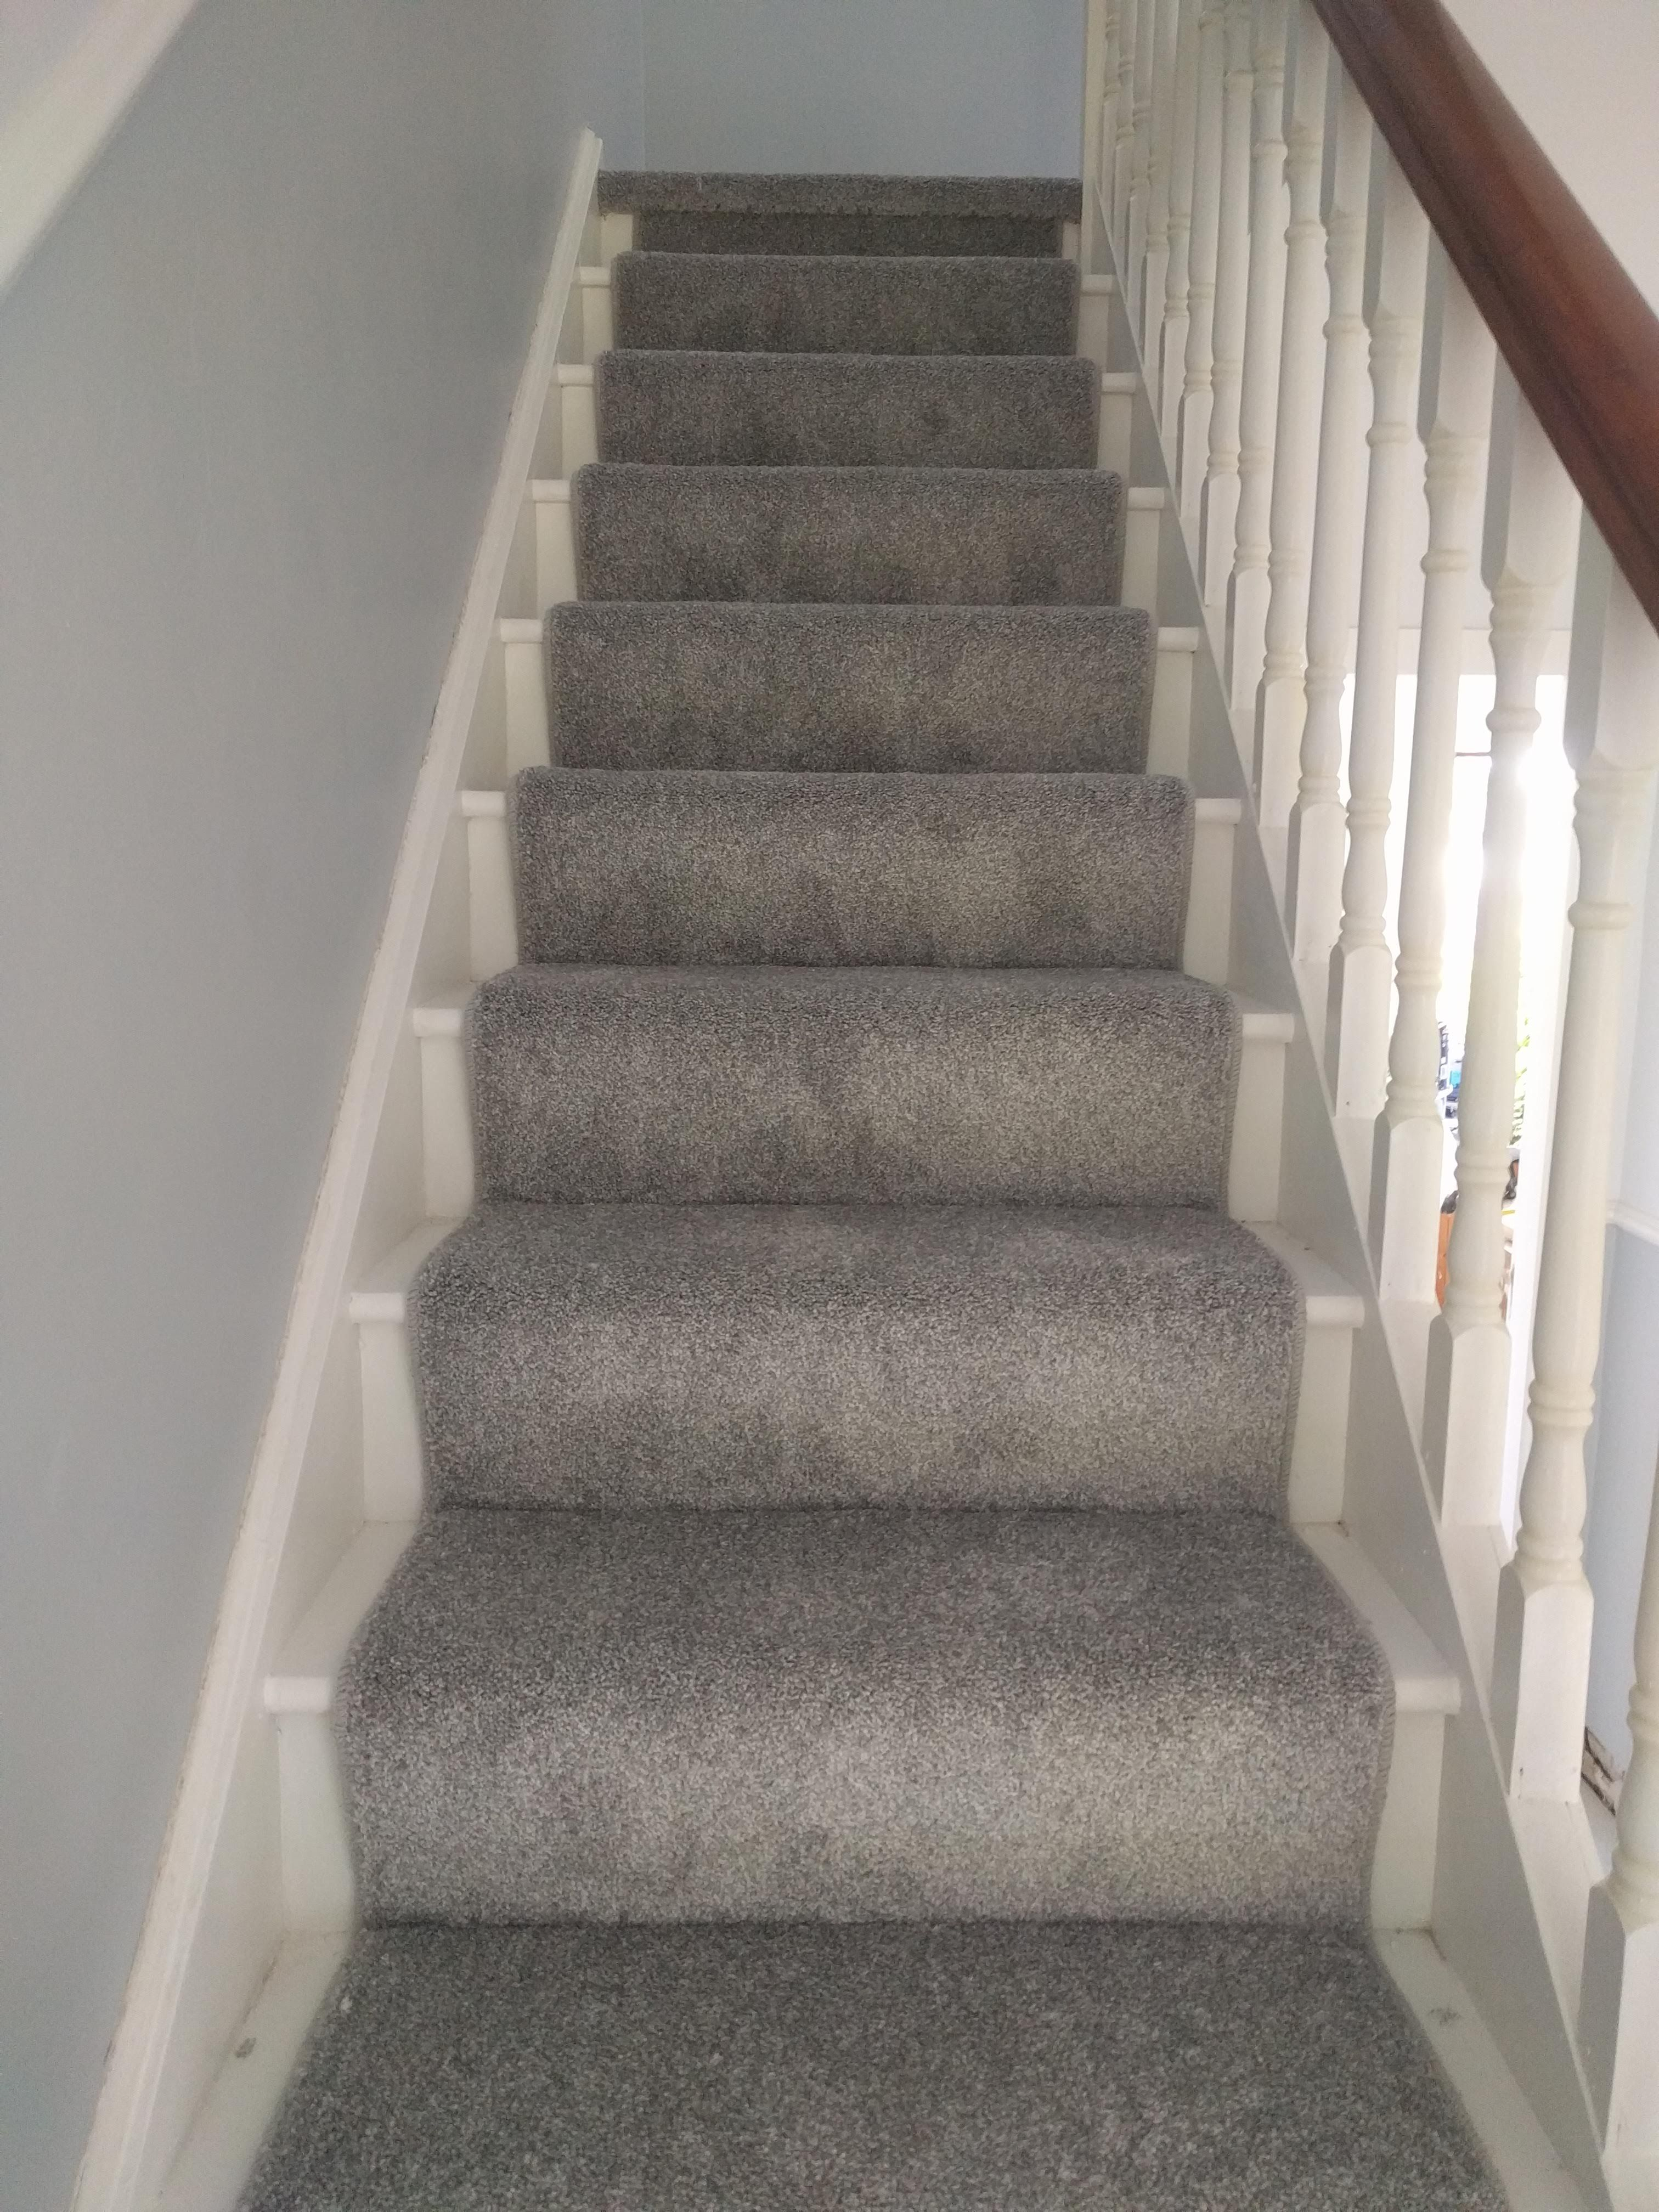 Stairs And Landing Completed With Carpet Stairs Runner In Light | Light Grey Carpet Stairs | Industrial | Runner | Modern | Grey Vinyl Flooring | Living Room